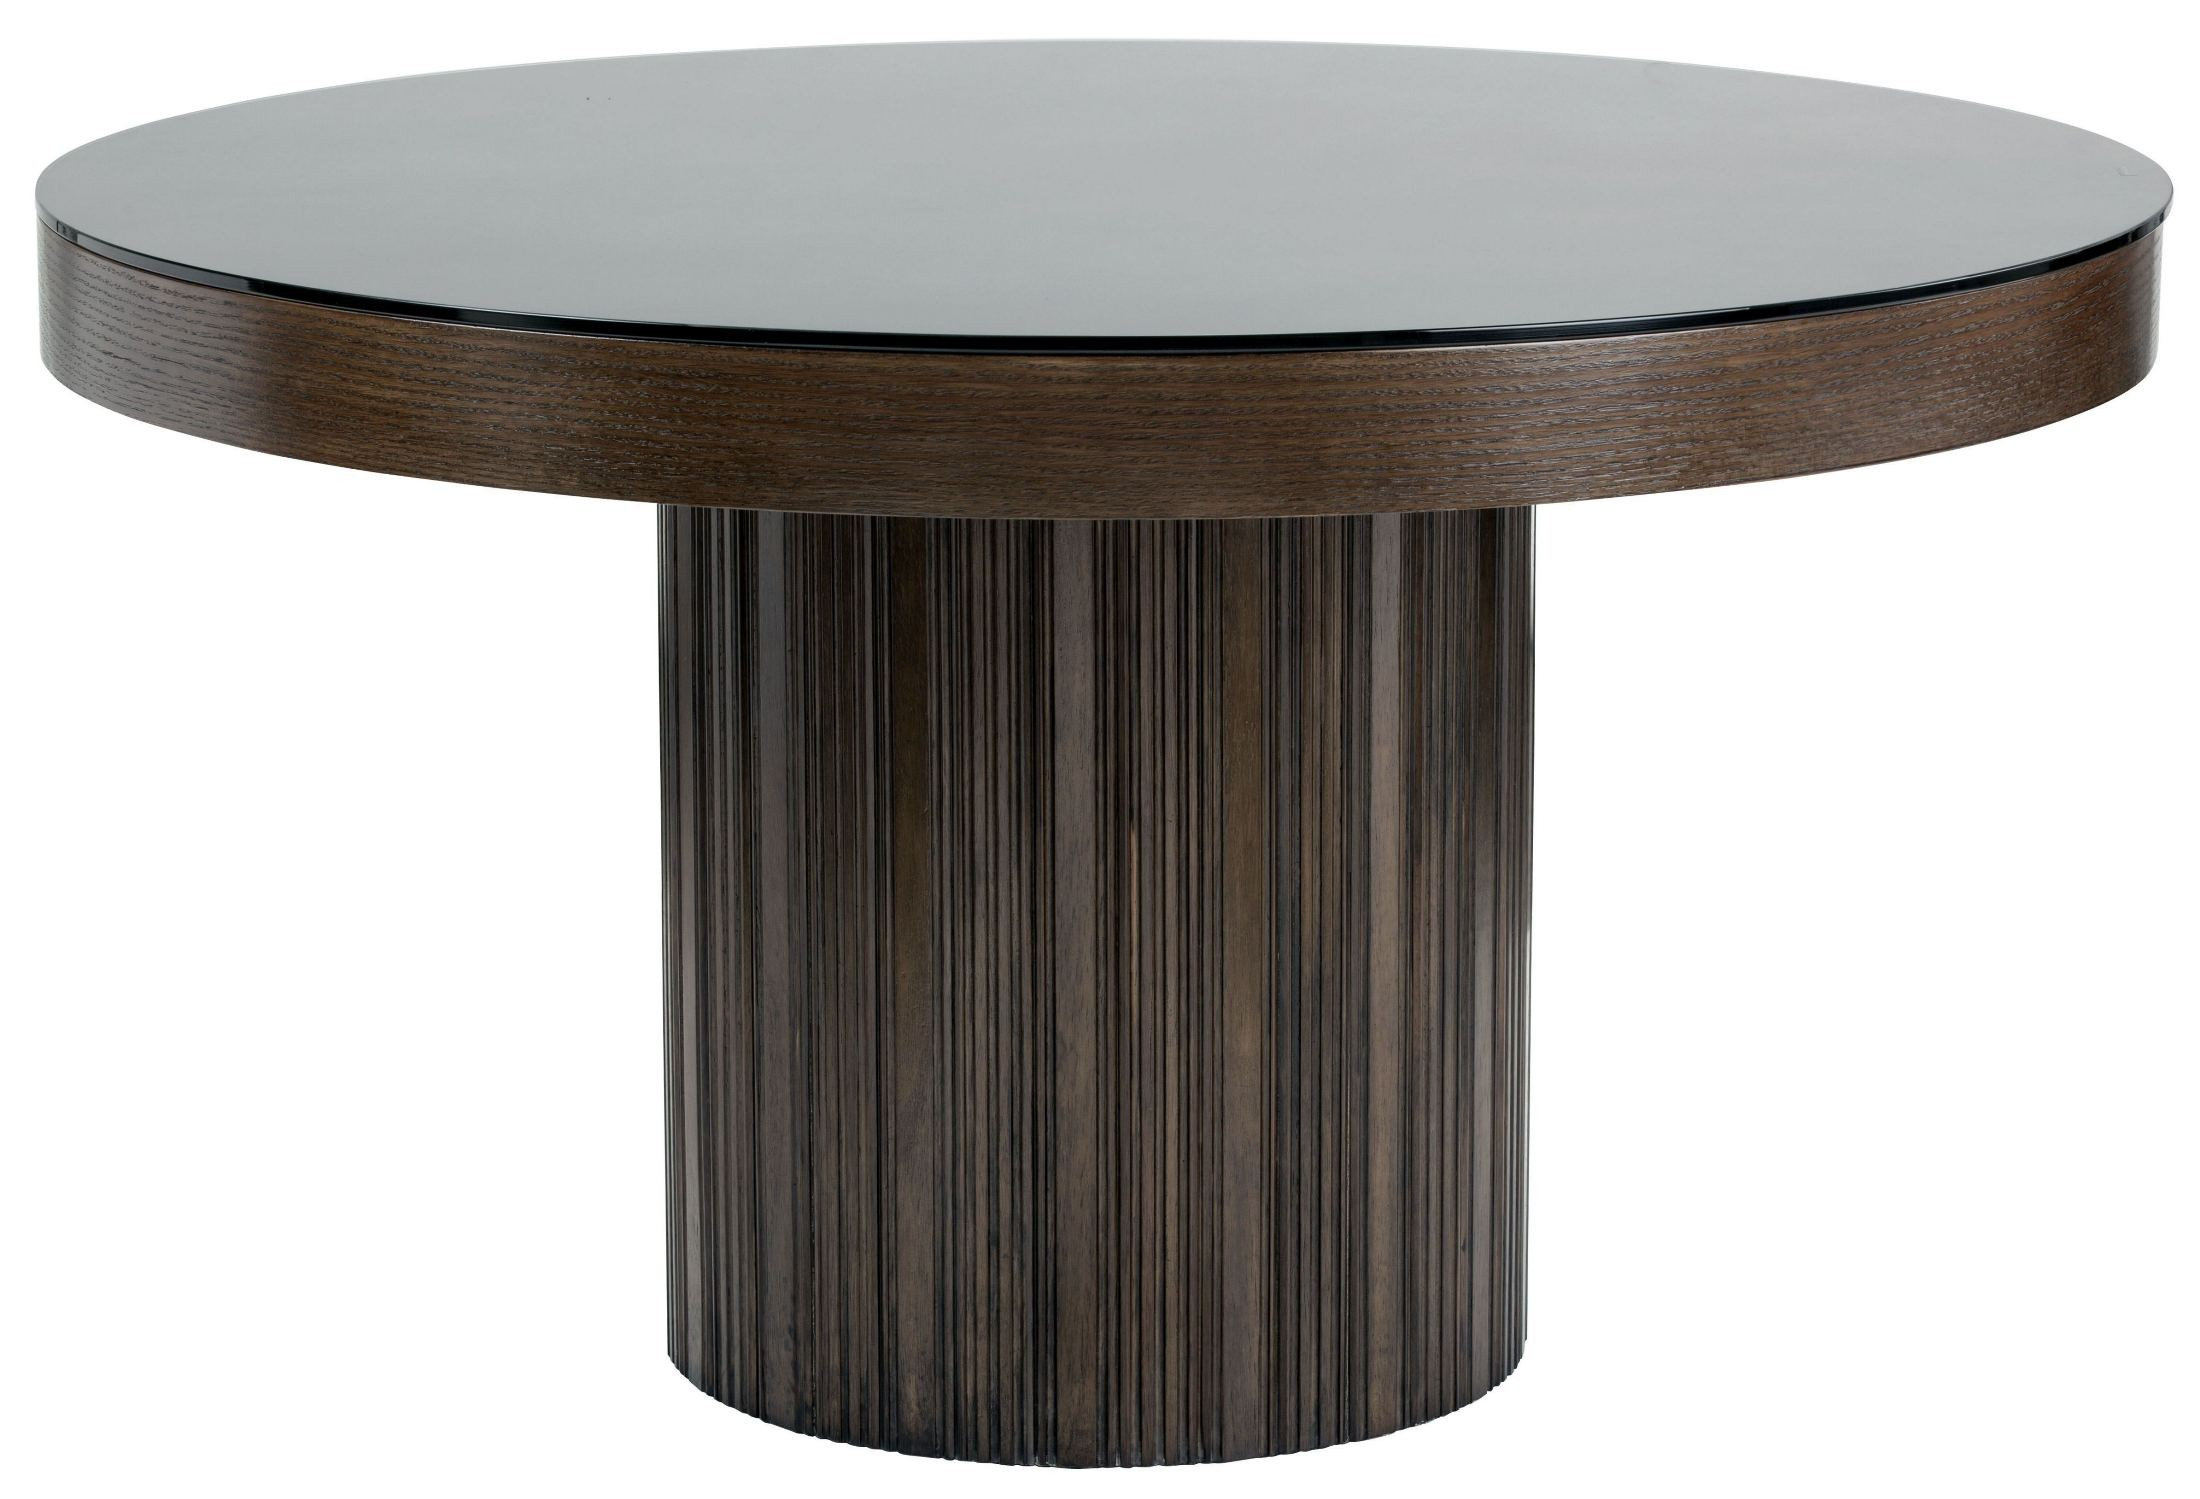 Jakarta Round Black Glass Top Dining Table from Sunpan